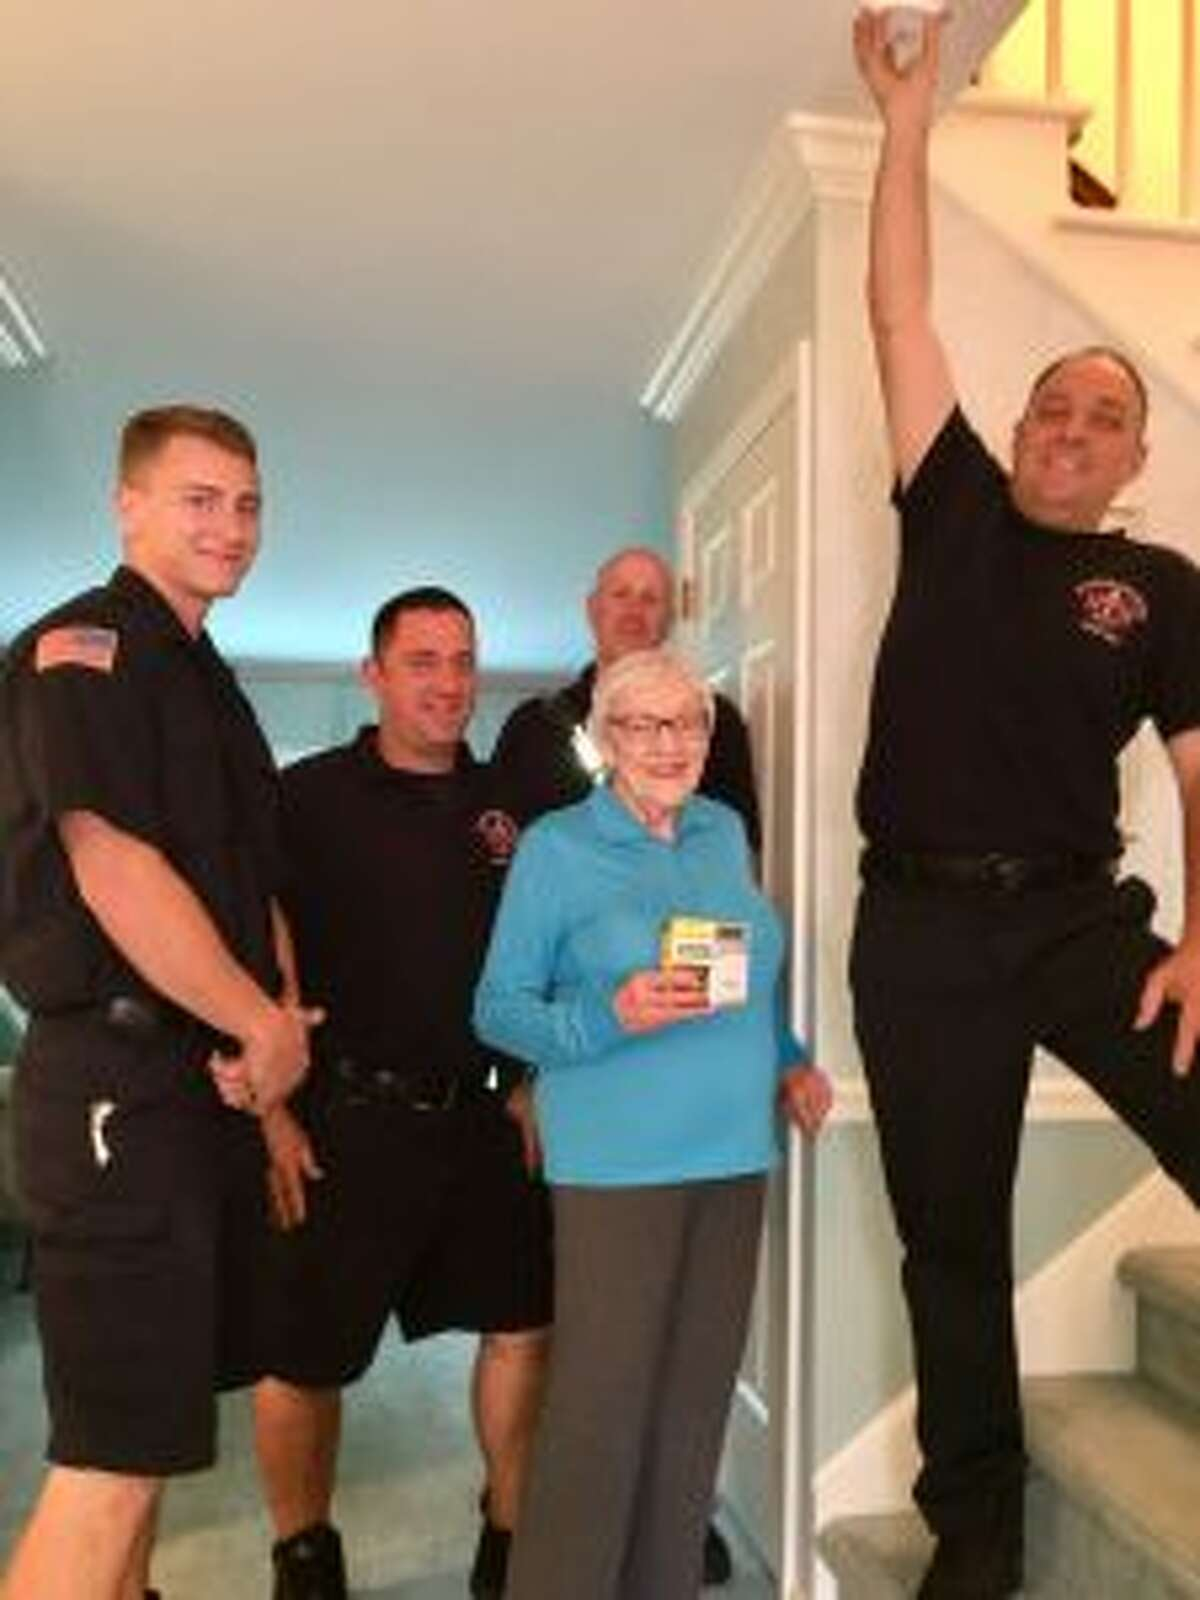 The New Canaan Fire Department offers free inspection, smoke alarms, and CO detectors. Firefighter Steve Gaeta replaces the expired smoke alarm in Staying Put member Katch Cerow's home. Looking on are, from left, firefighters Will Garbus and Joe Dilorio, and Lt. Duffy Sasser. - Cathy Fitzpatrick photo